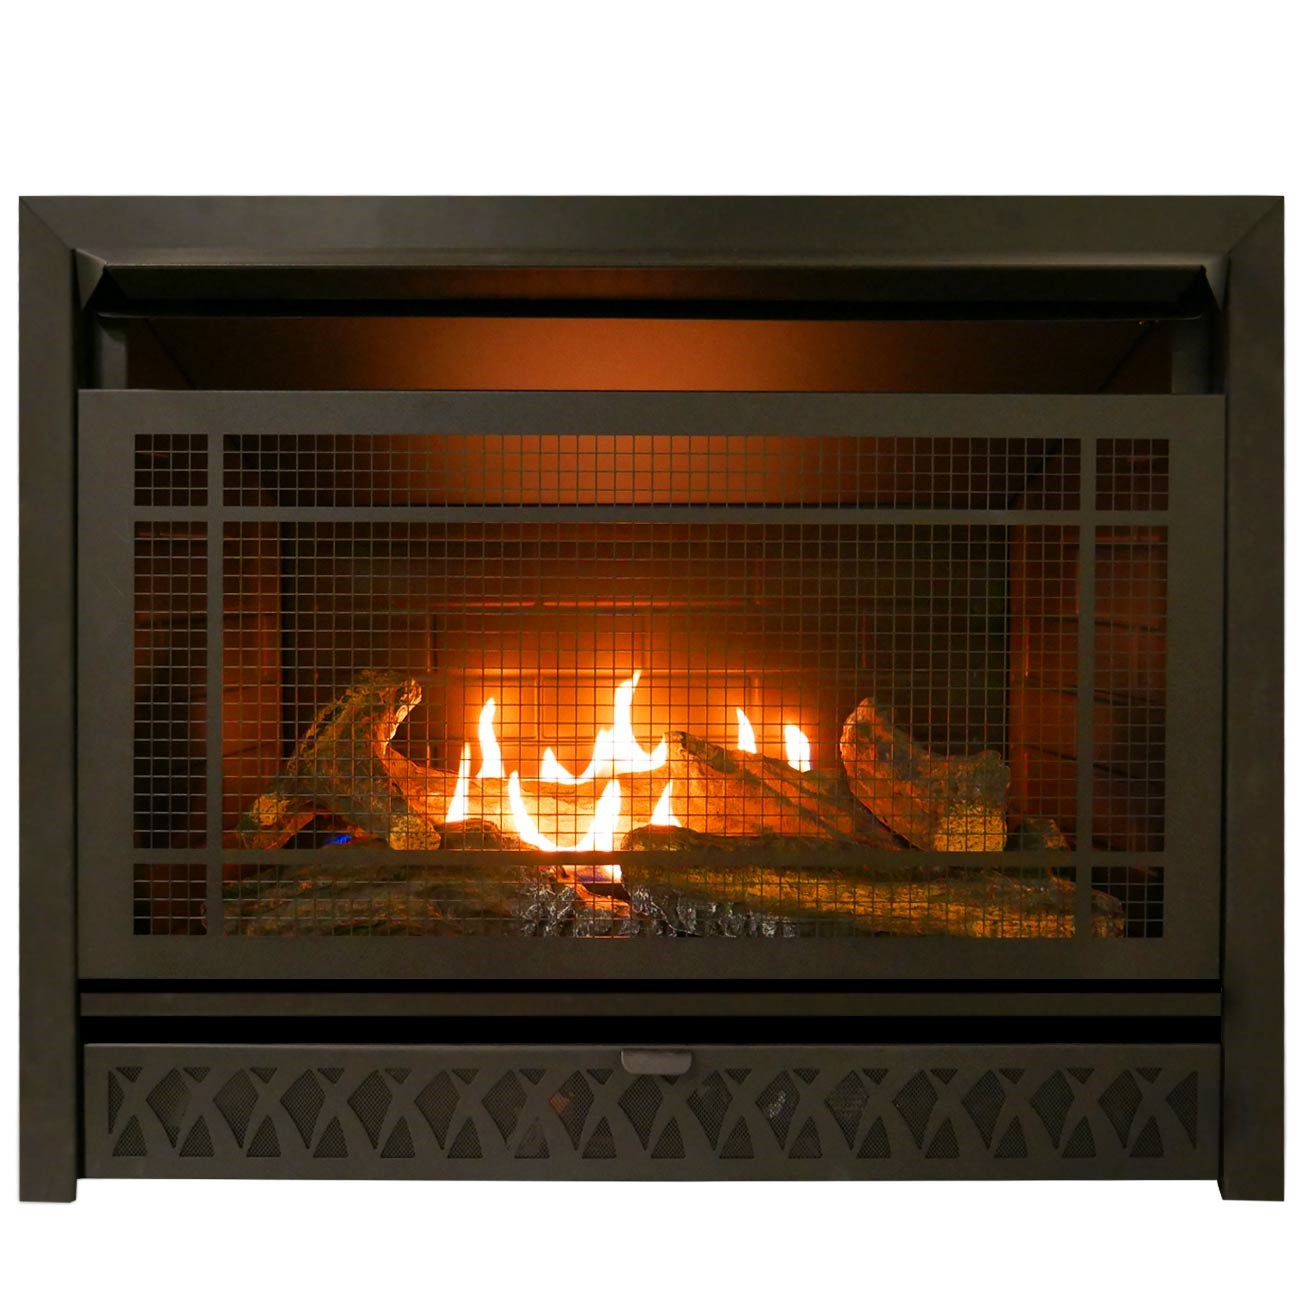 Standard Gas Fireplace Insert Dimensions Gas Fireplace Insert Dual Fuel Technology 26 000 Btu